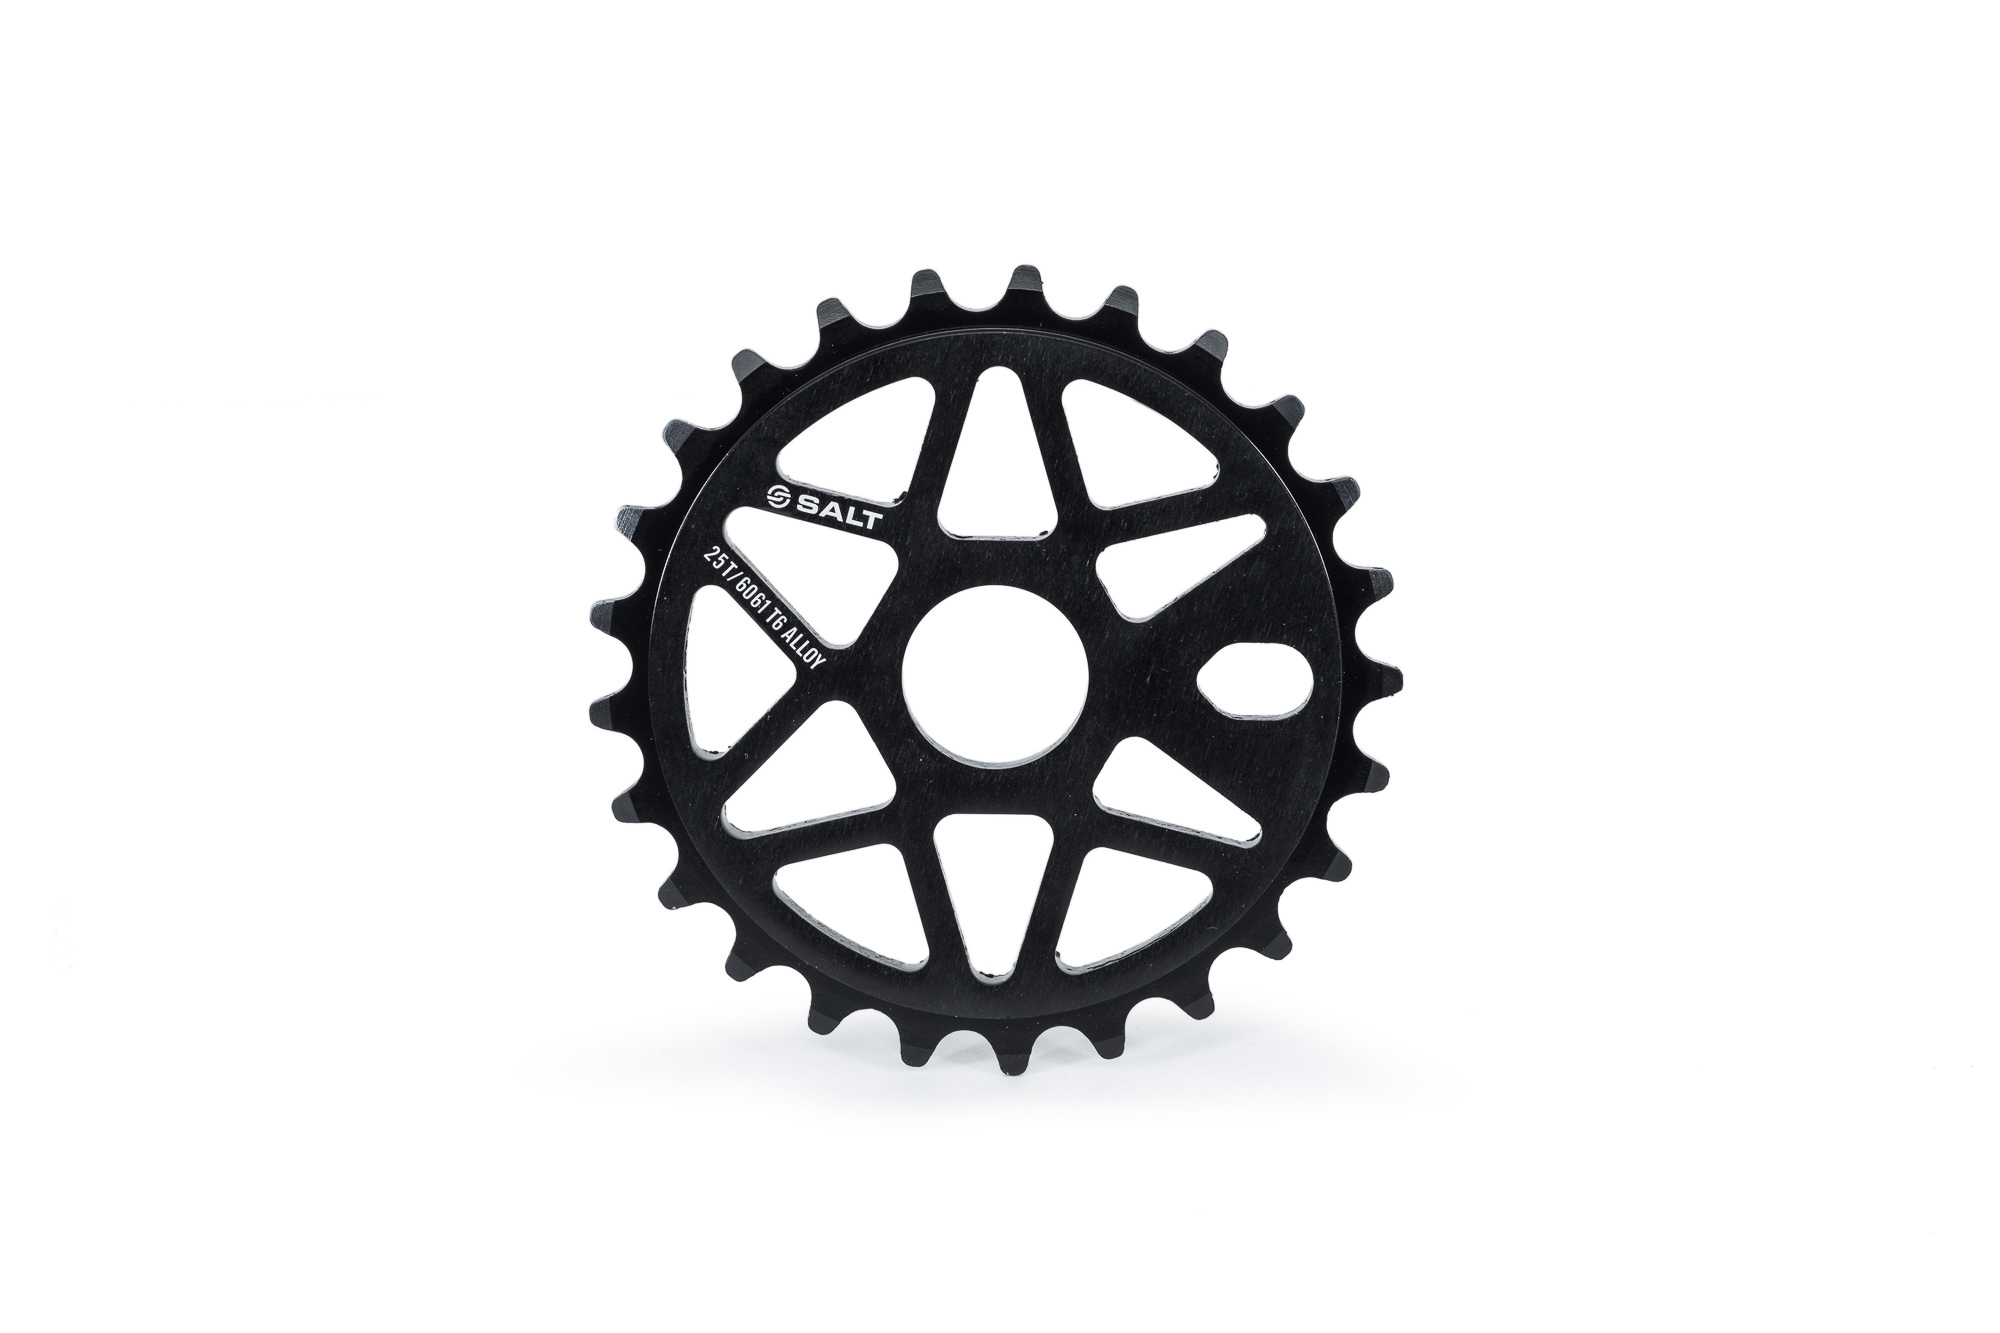 Salt_Comp_sprocket_black